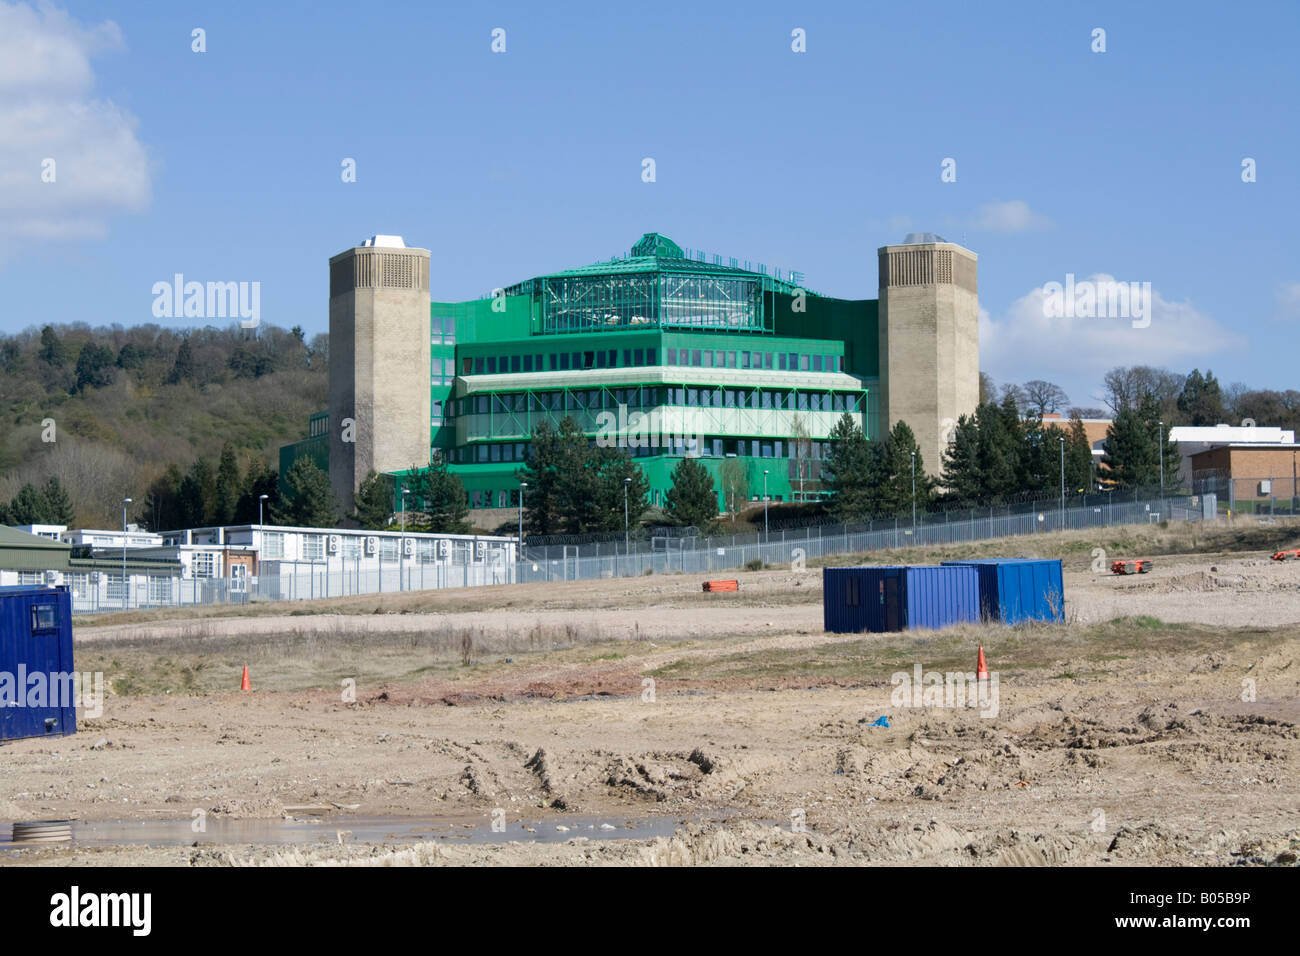 Gchq Cheltenham Stock Photos   Gchq Cheltenham Stock Images - Alamy 9d18141724